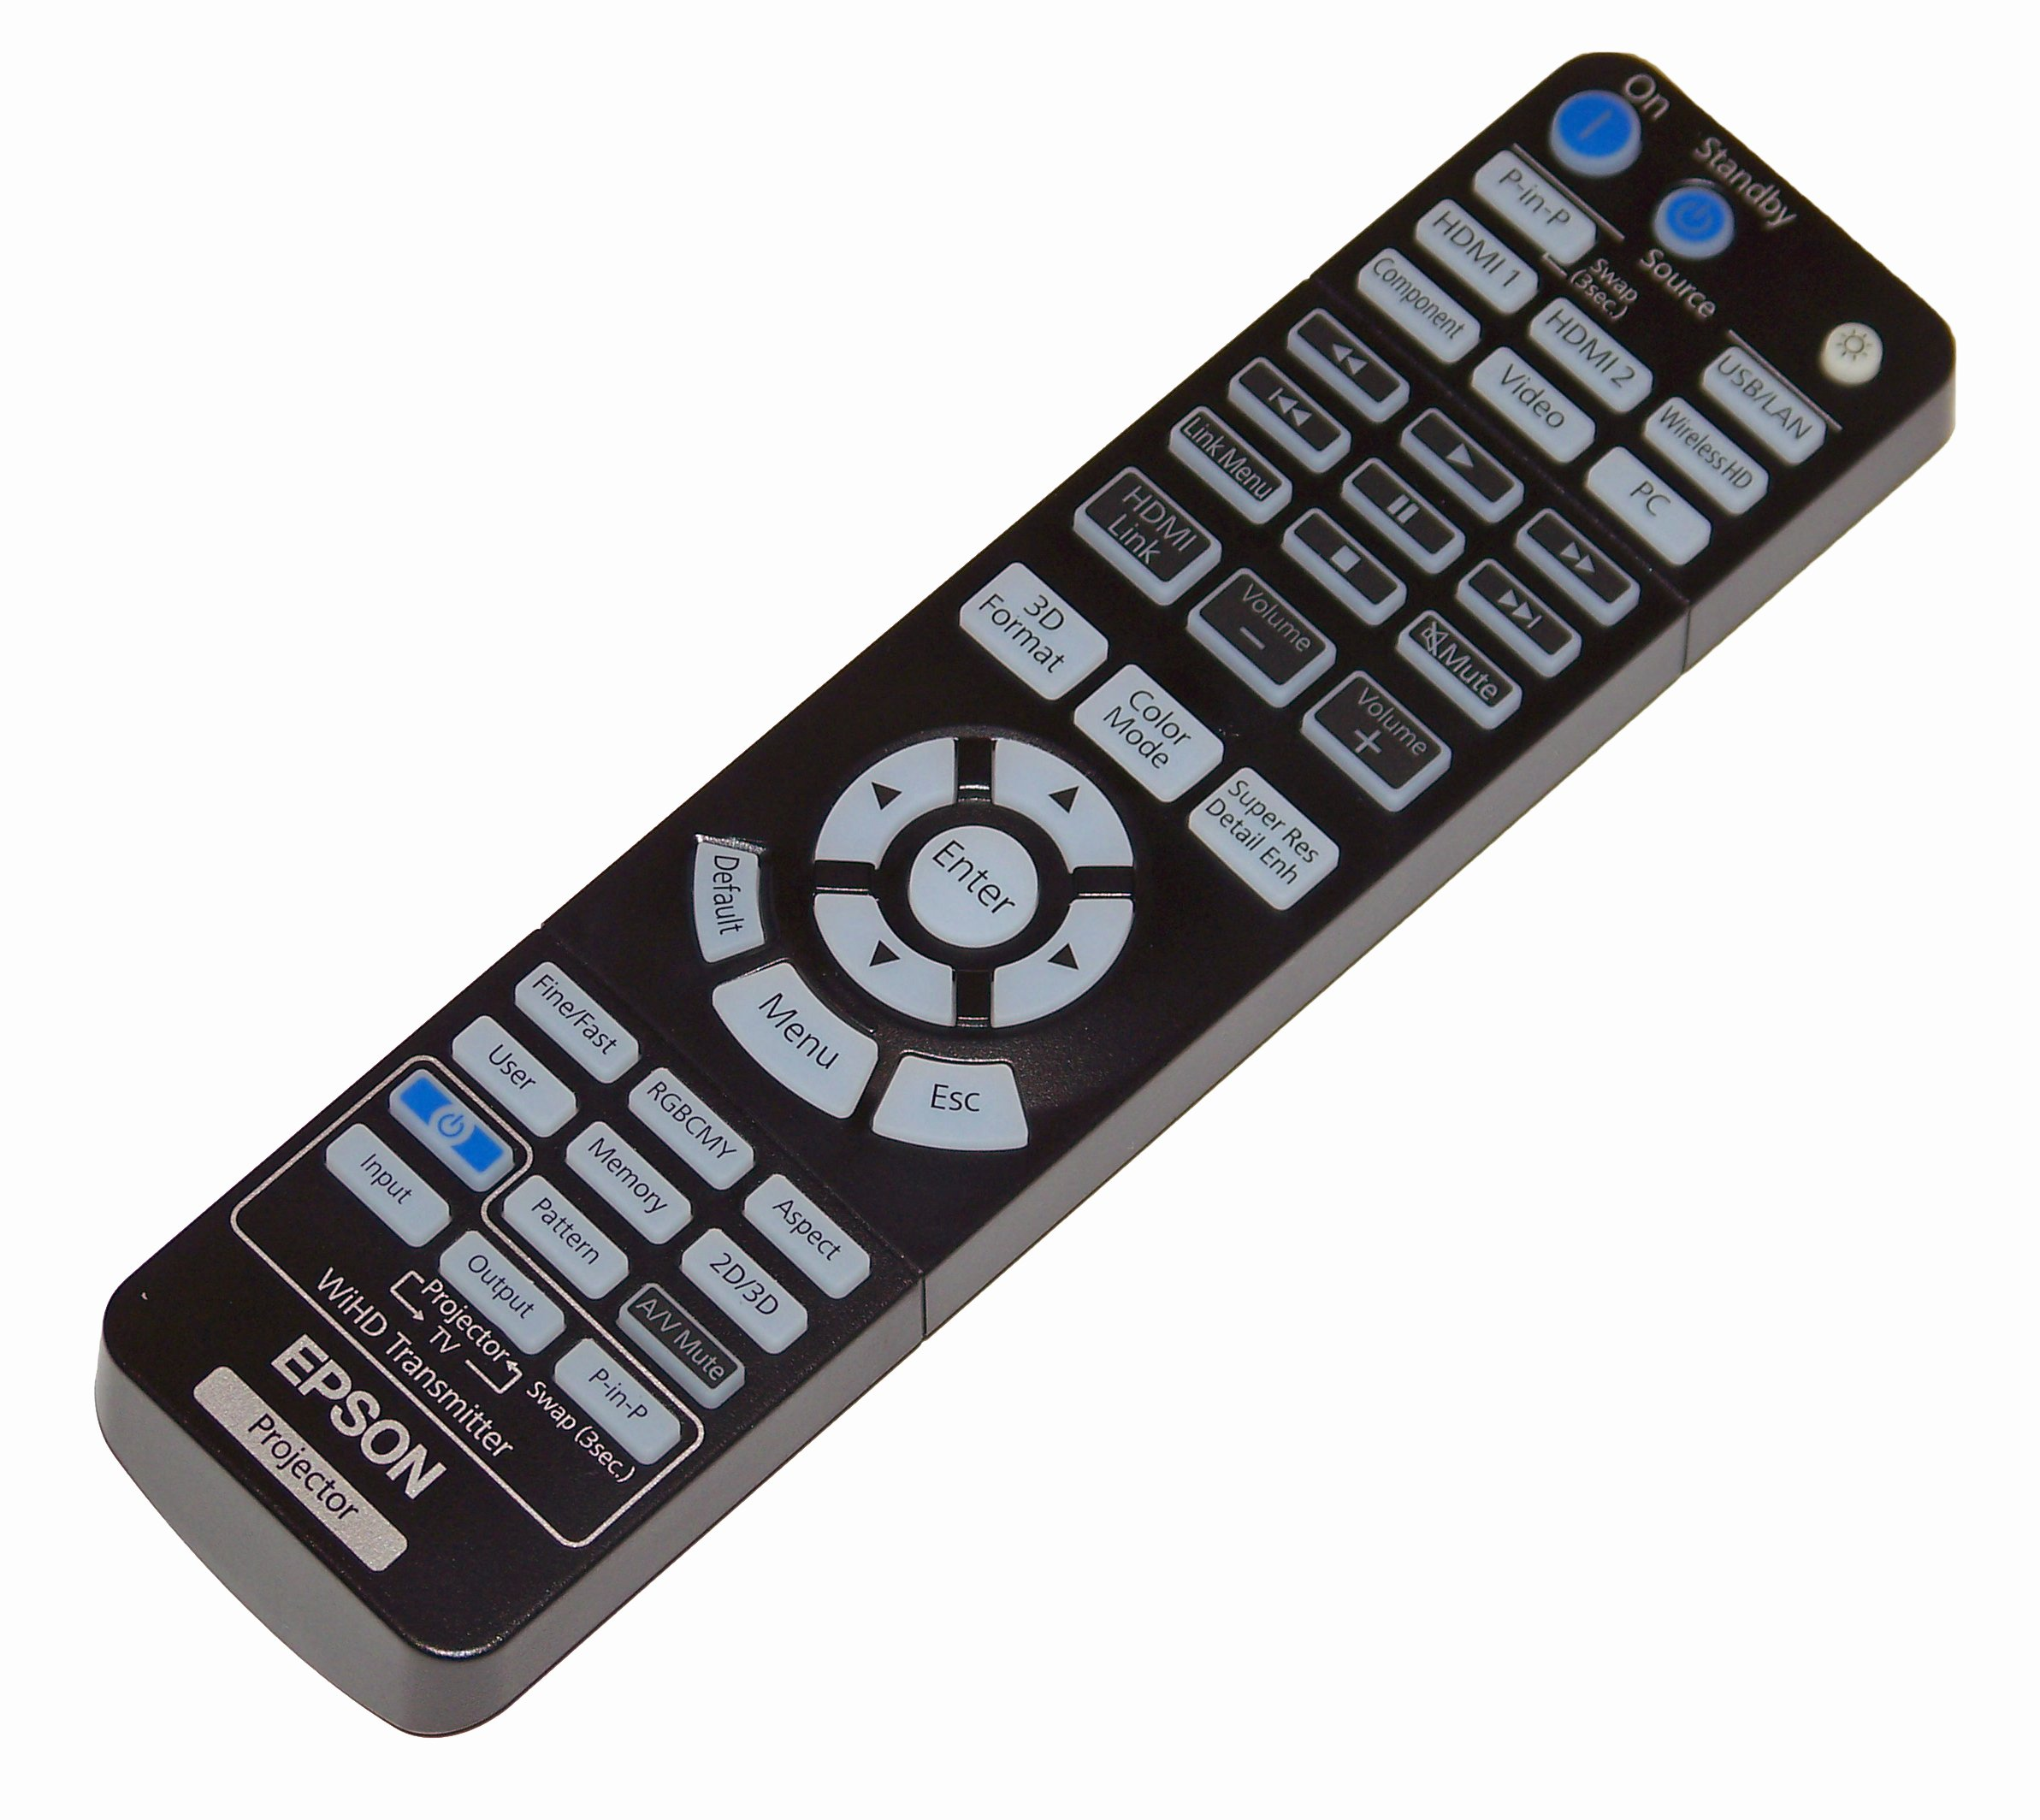 Epson Projector Remote Control: PowerLite Home Cinema 3000, PowerLite Home Cinema 3500, PowerLite Home Cinema 3600e by Epson